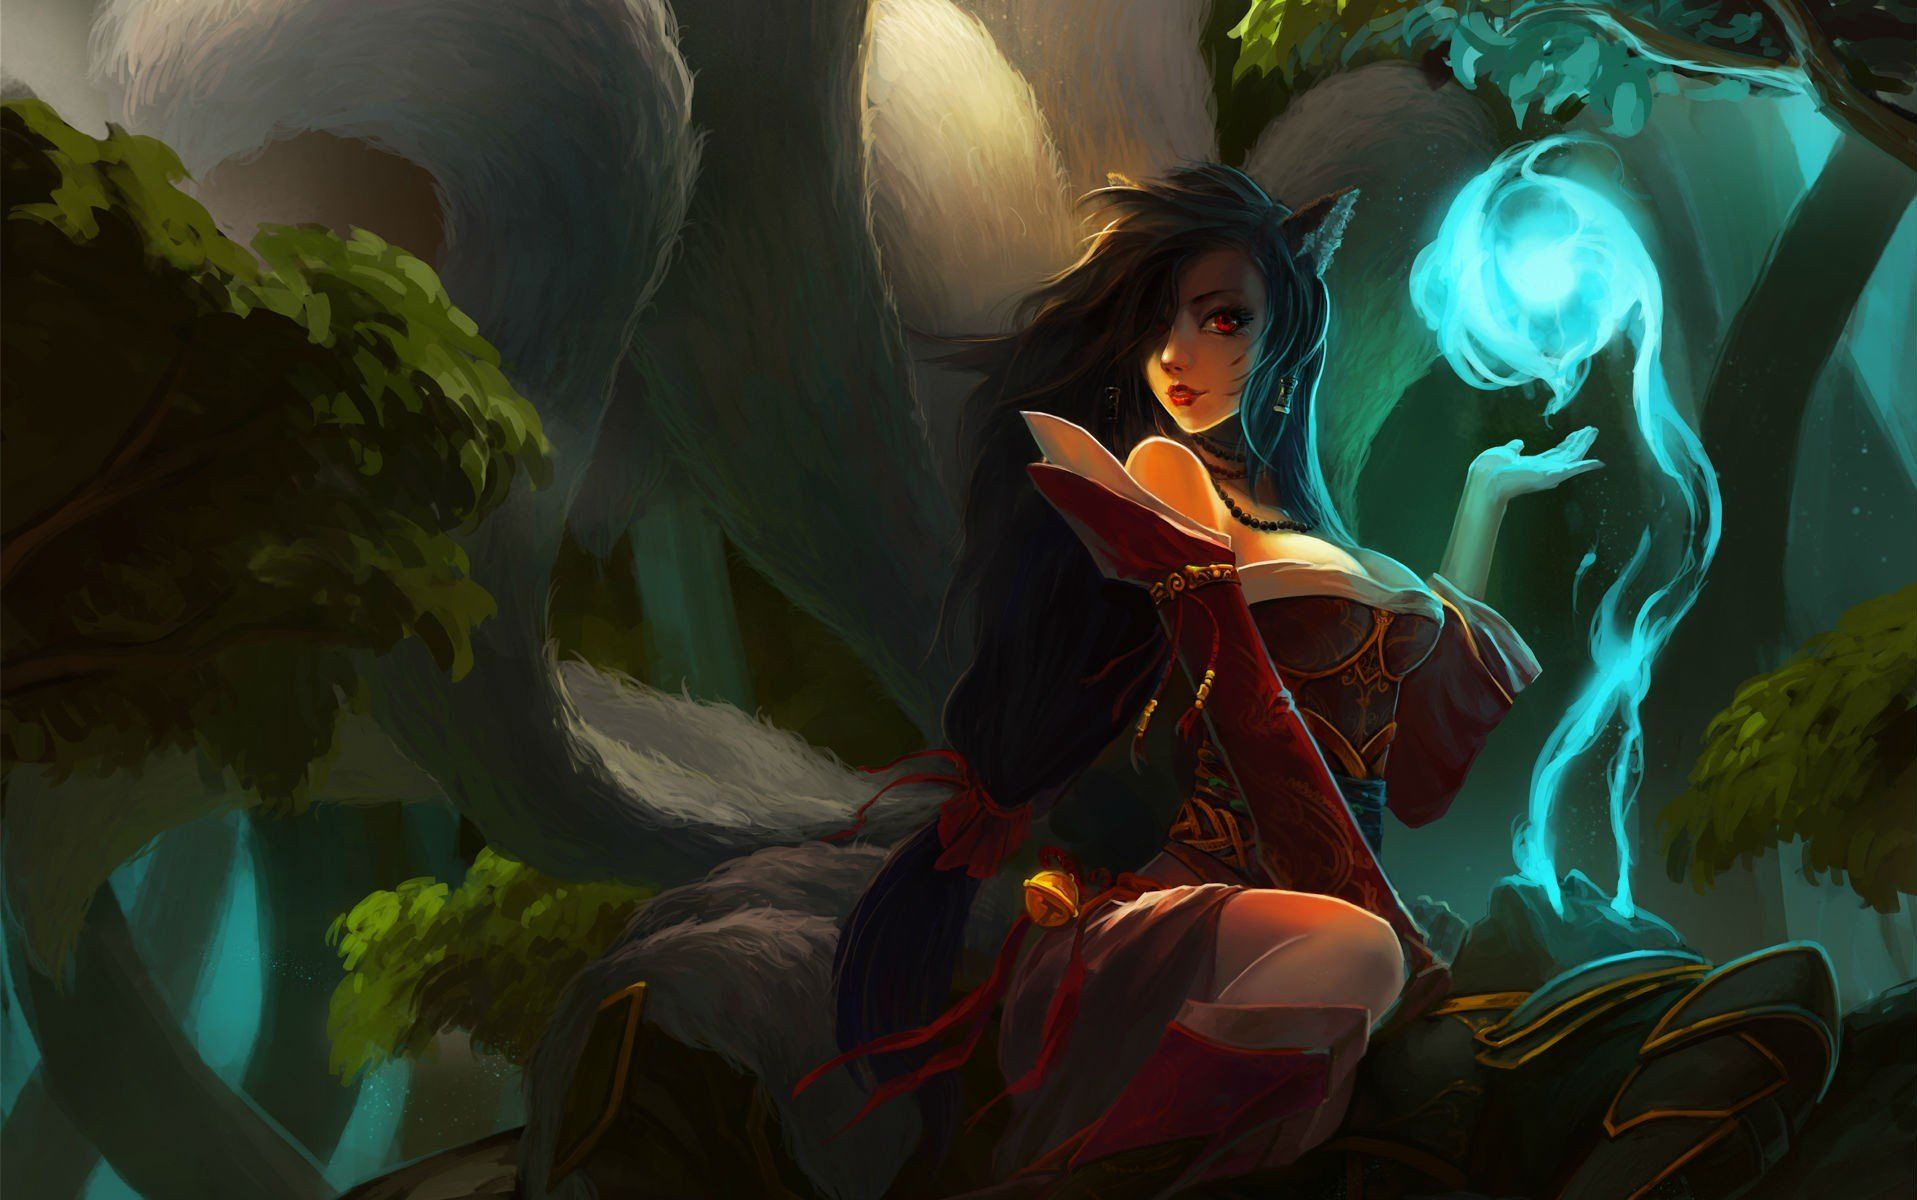 [3840x1080] Ahri - League of Legends Dual monitor or even 1920x1080 request. Need #iPhone #6S #Plus #Wallpaper/ #Background for #IPhone6SPlus? Follow iPhone 6S Plus 3Wallpapers/ #Backgrounds Must to Have http://ift.tt/1SfrOMr